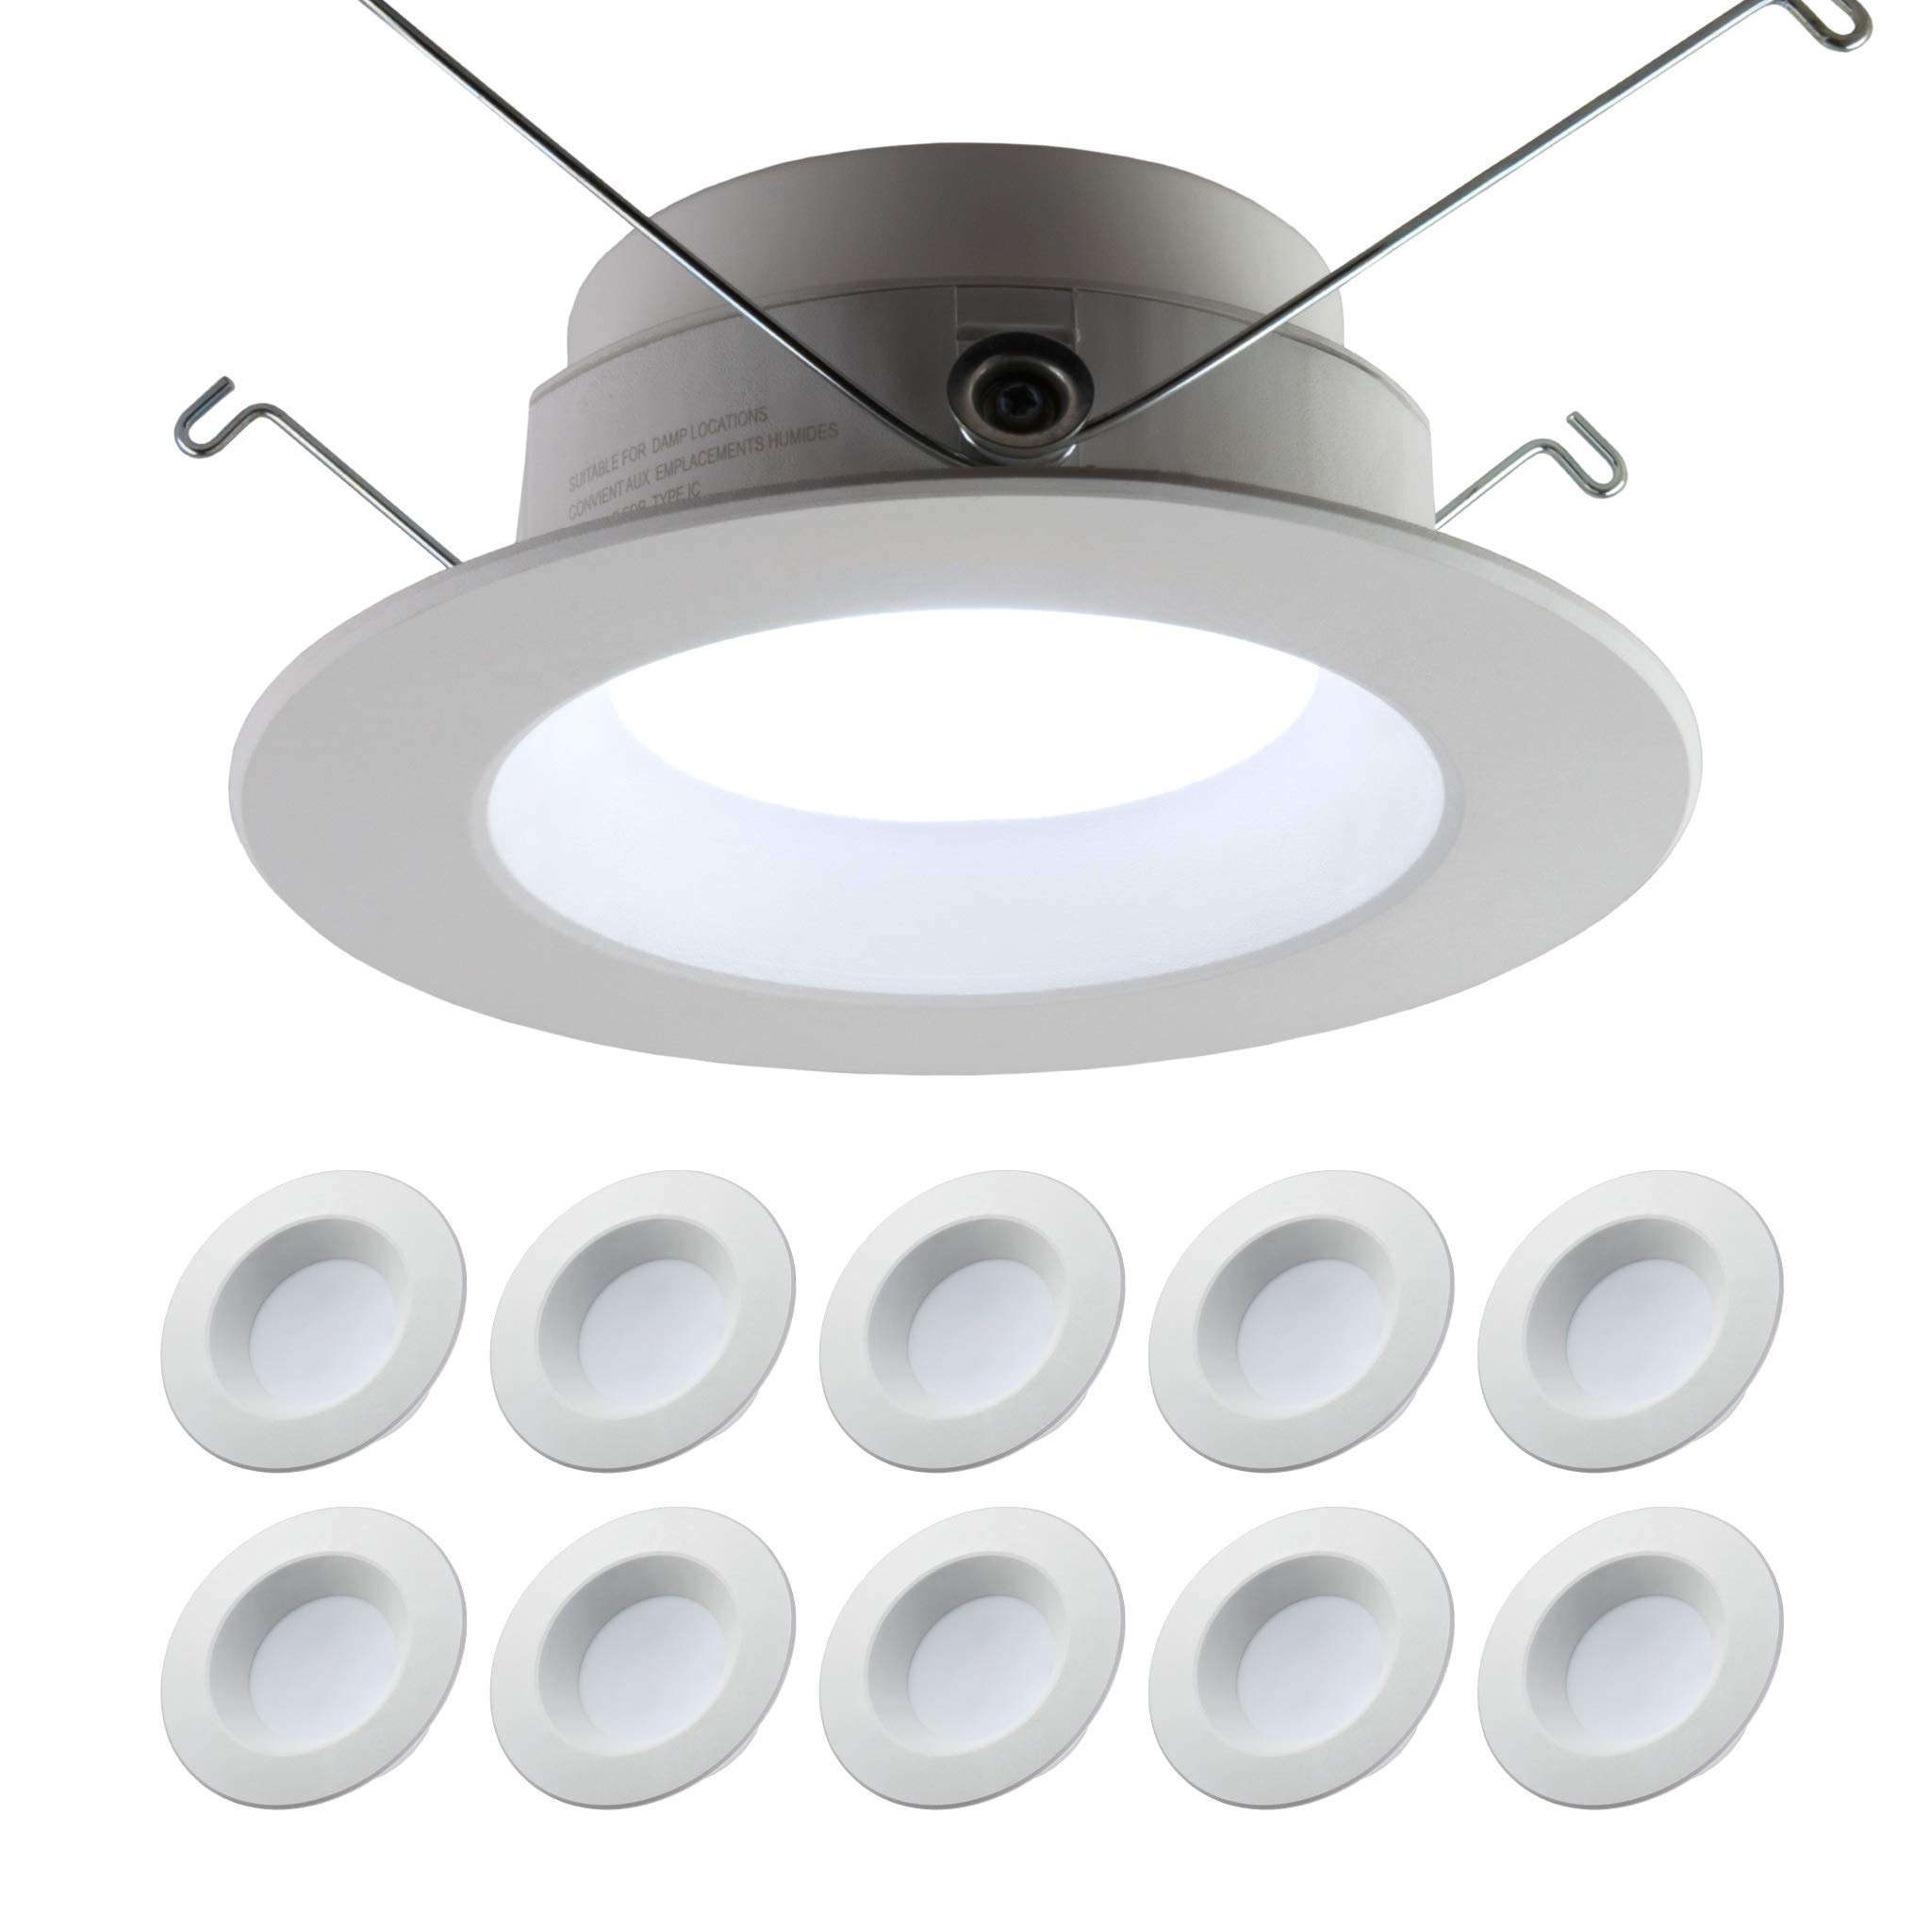 5/6'' inch Dimmable LED Downlight (10 PACK) 15W= 120W Replacement; 1100 Lumens; 120V; CRI>90; JA-8 Compliant, Energy Star, UL Listed; Easy Install Into Exisiting 5/6'' Recessed Can (Daylight 5000K) by Quest LED